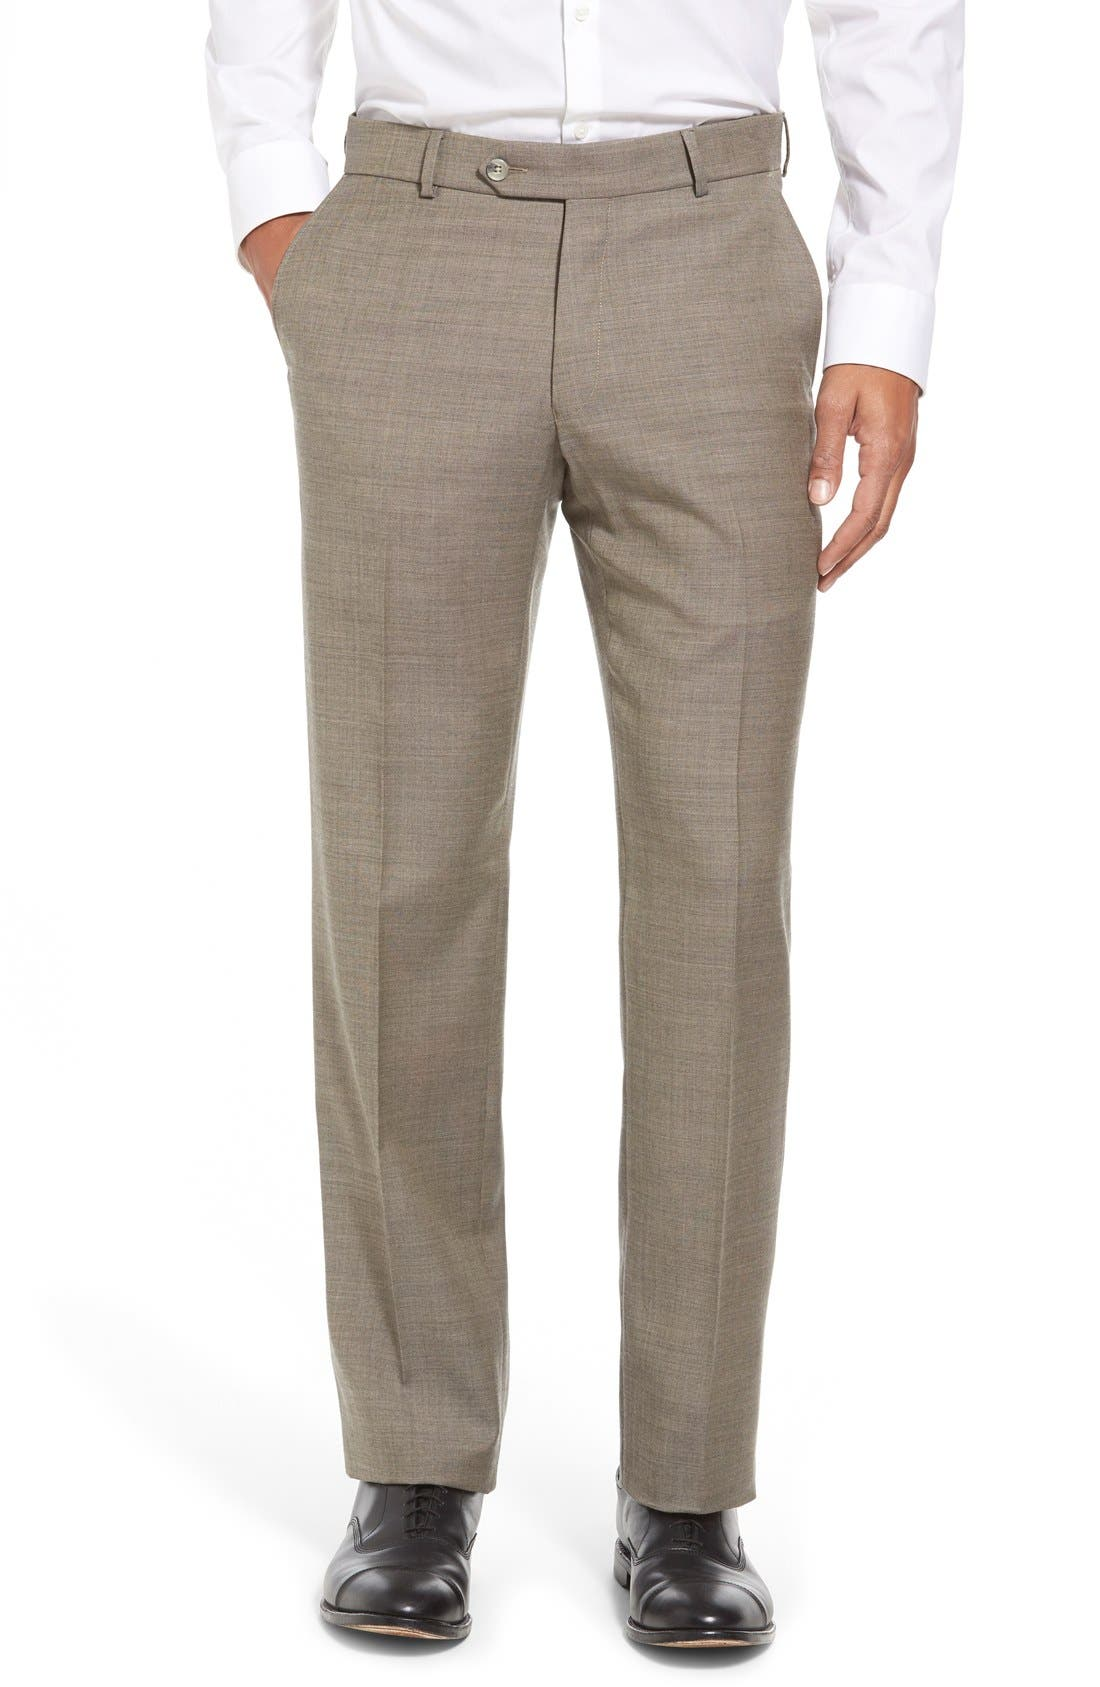 Flat Front Sharkskin Wool Trousers,                             Main thumbnail 1, color,                             British Tan